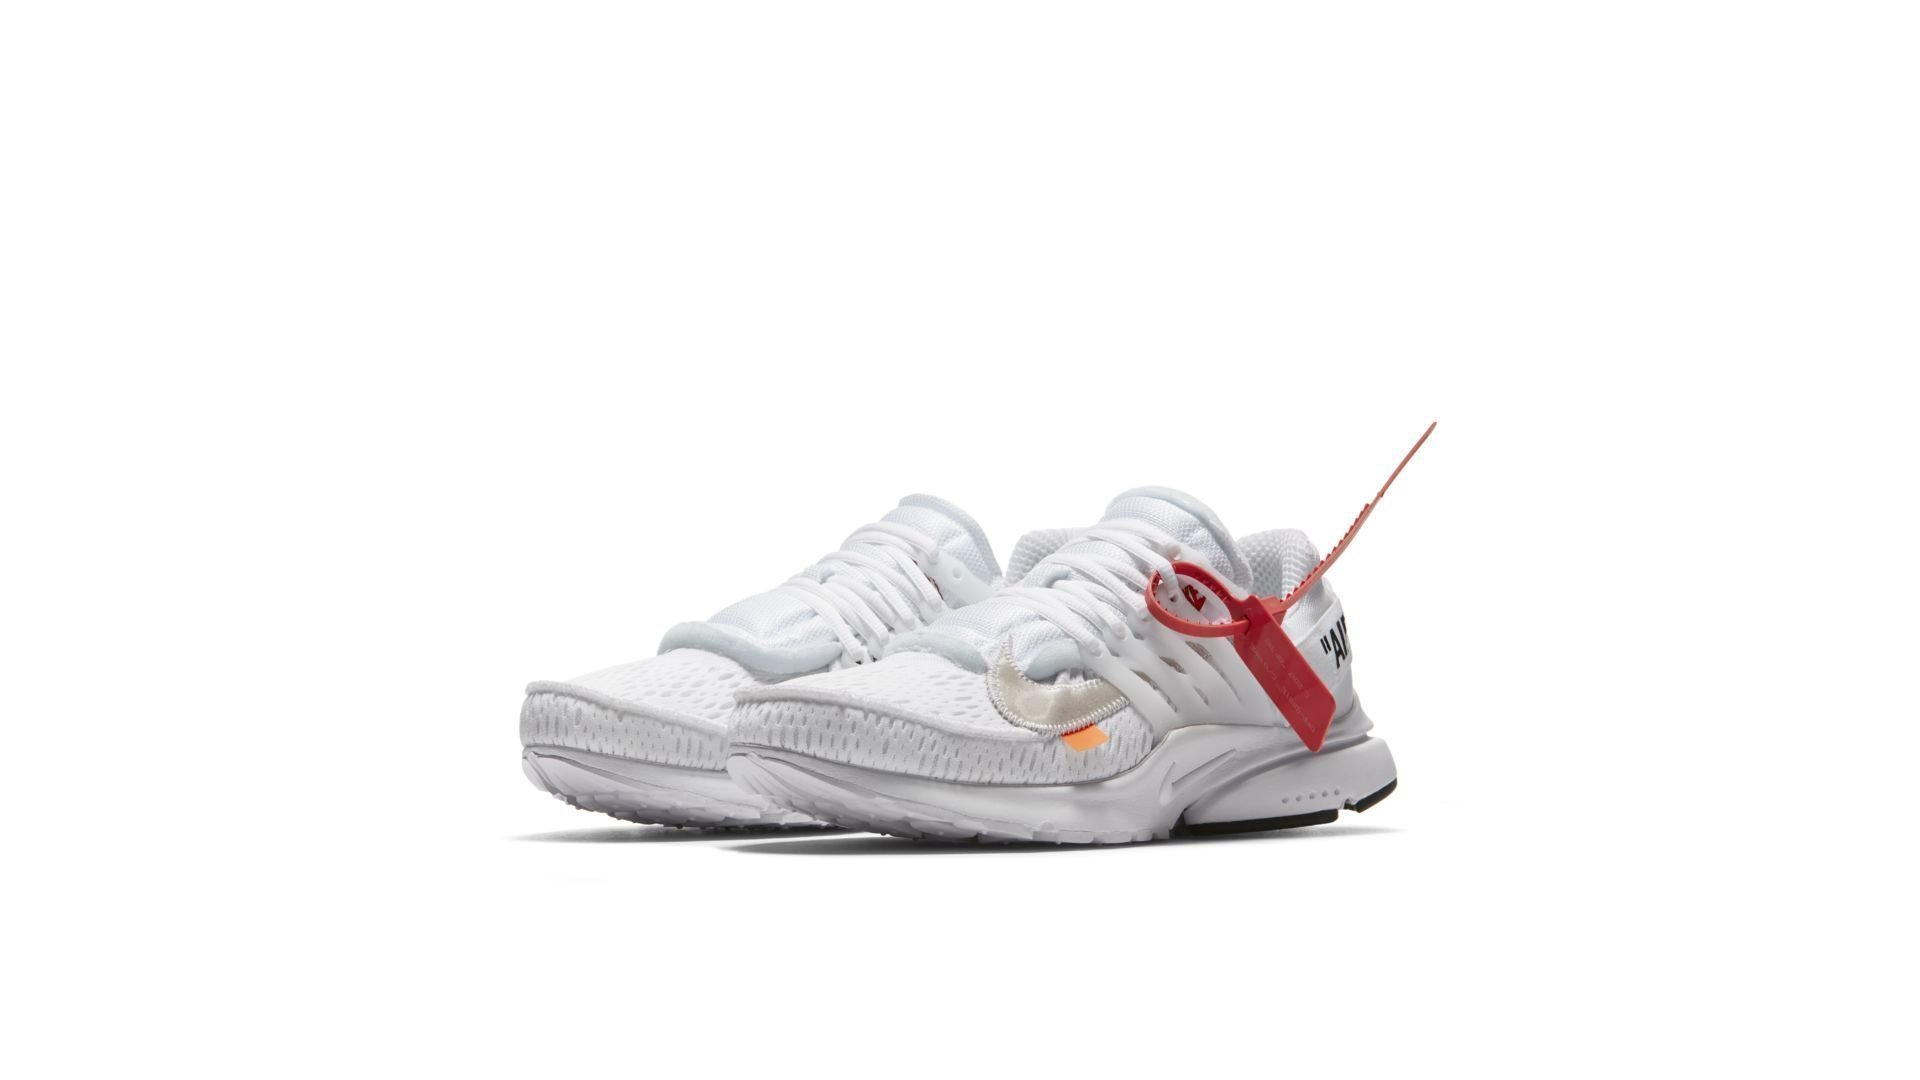 Nike Air Presto Off-White White (2018) (AA3830-100)